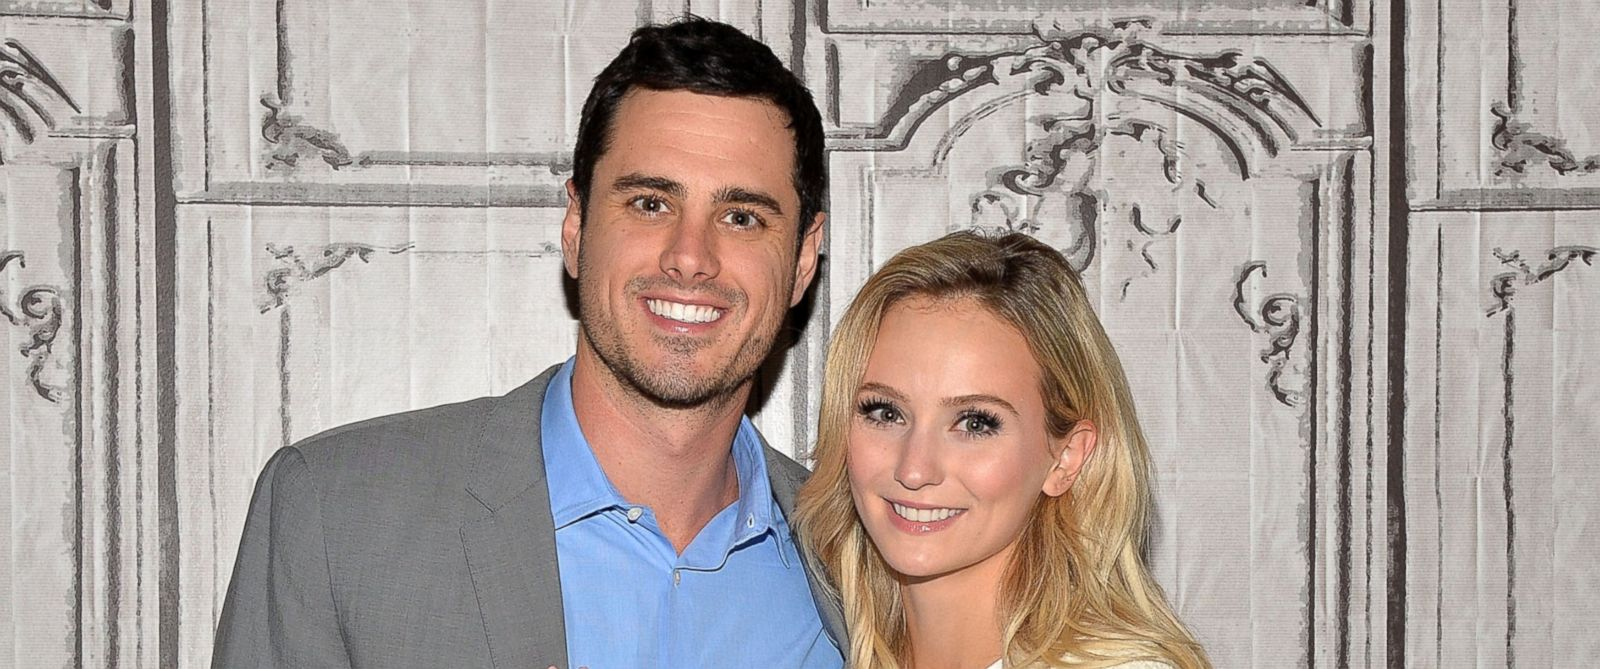 "PHOTO: Bachelor Ben Higgins and Lauren Bushnell attend the AOL Build Speaker Series to discuss ""The Bachelor"" at AOL Studios on March 15, 2016 in New York City."